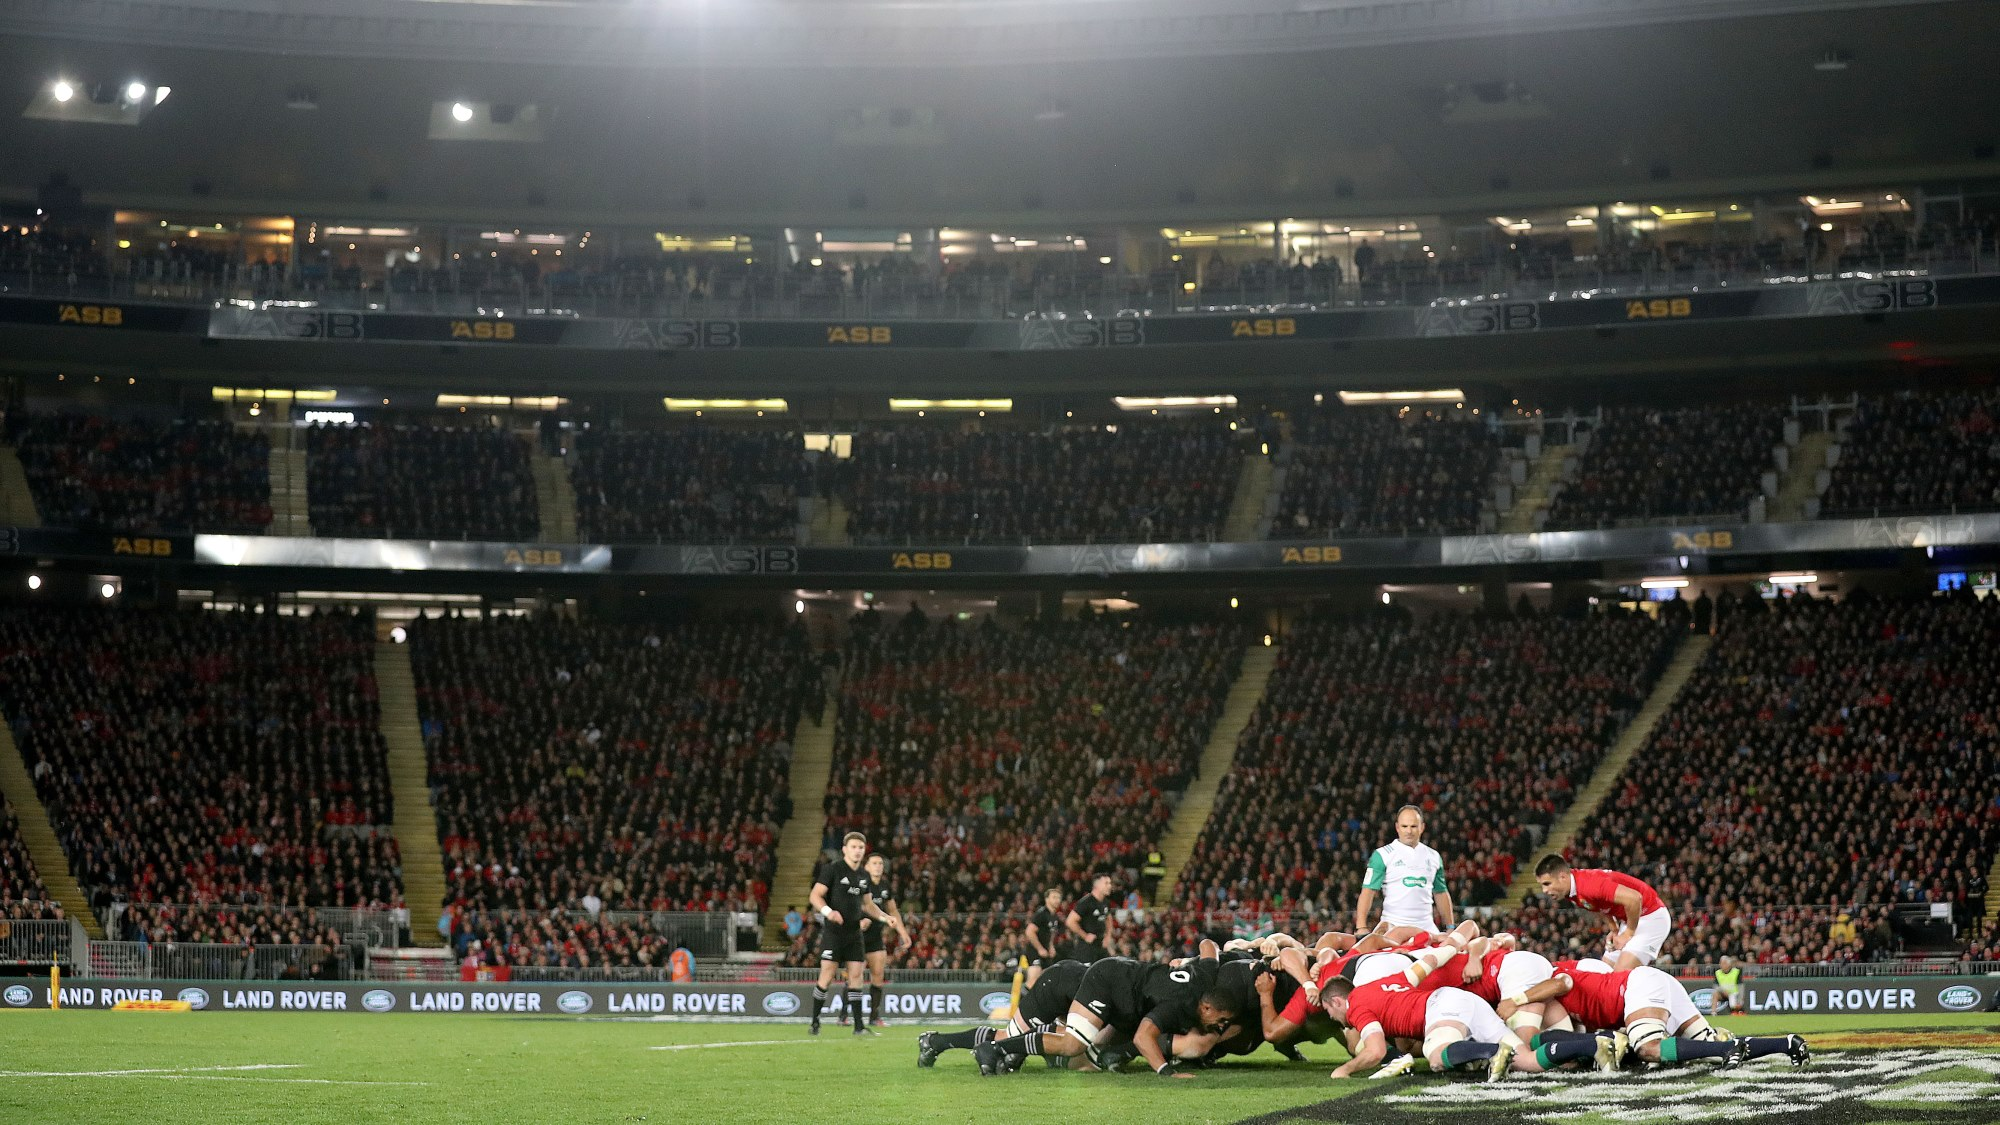 Vunipola looks ahead to next test for Lions